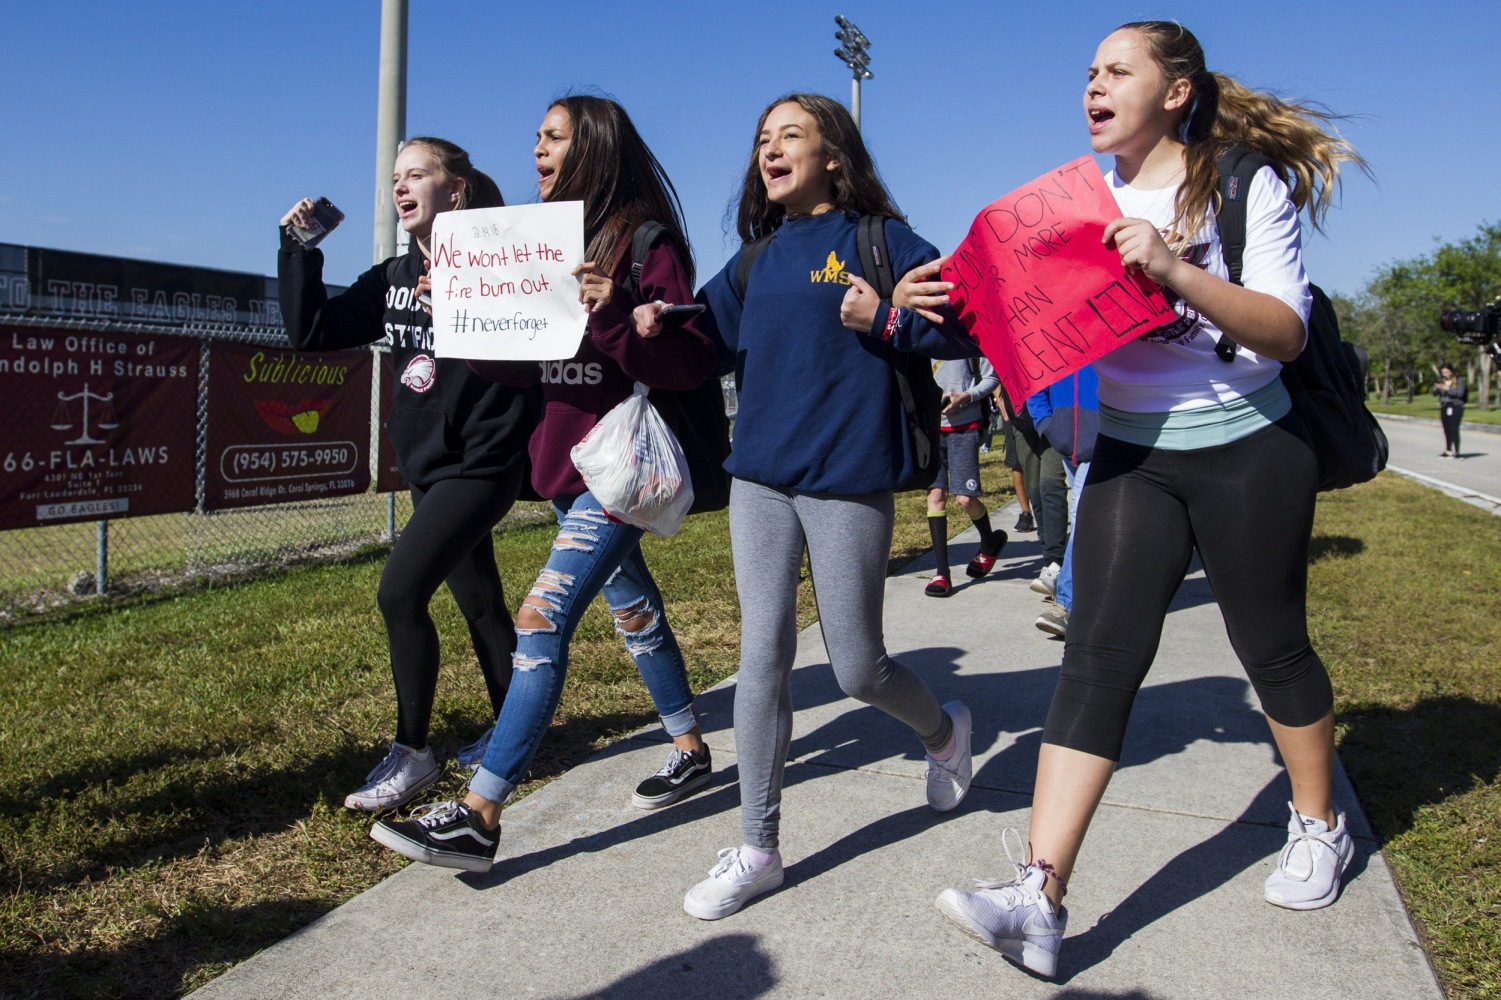 Students Demand Action On Gun Violence With Nationwide